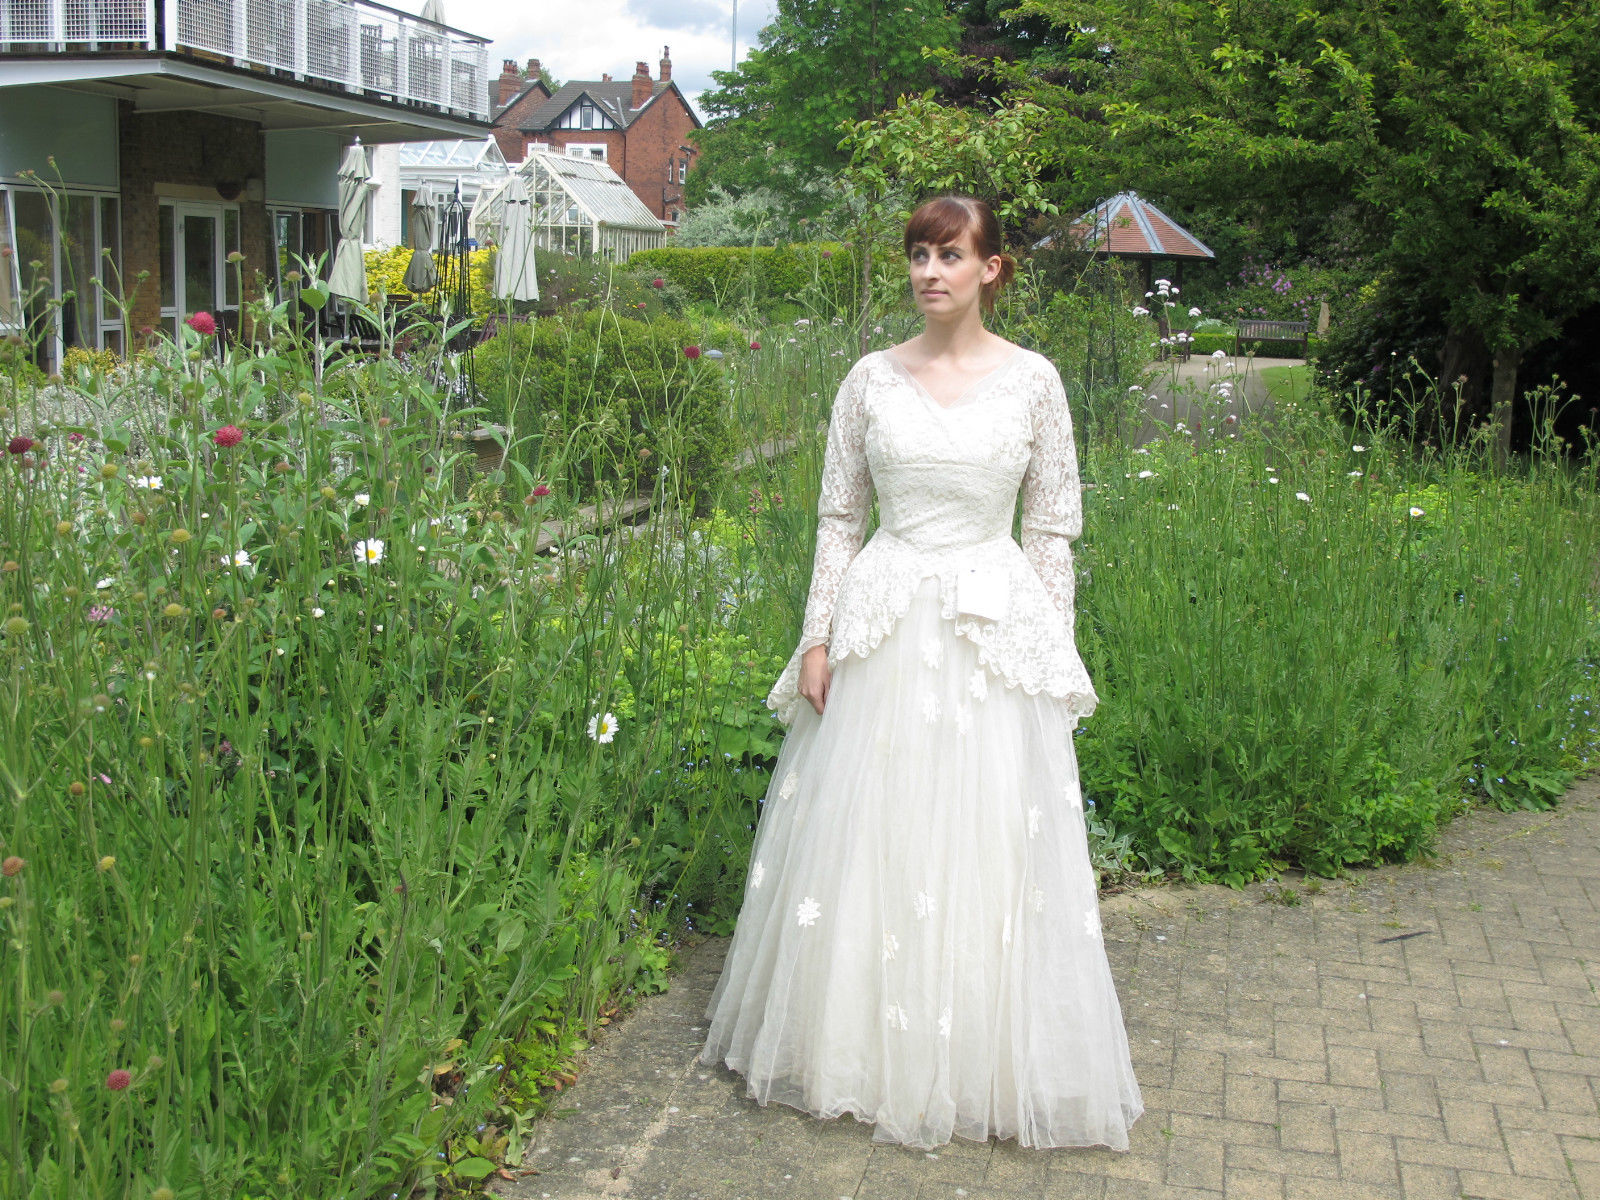 Man donates late wife's wedding dress to a charity shop along with a beautiful note